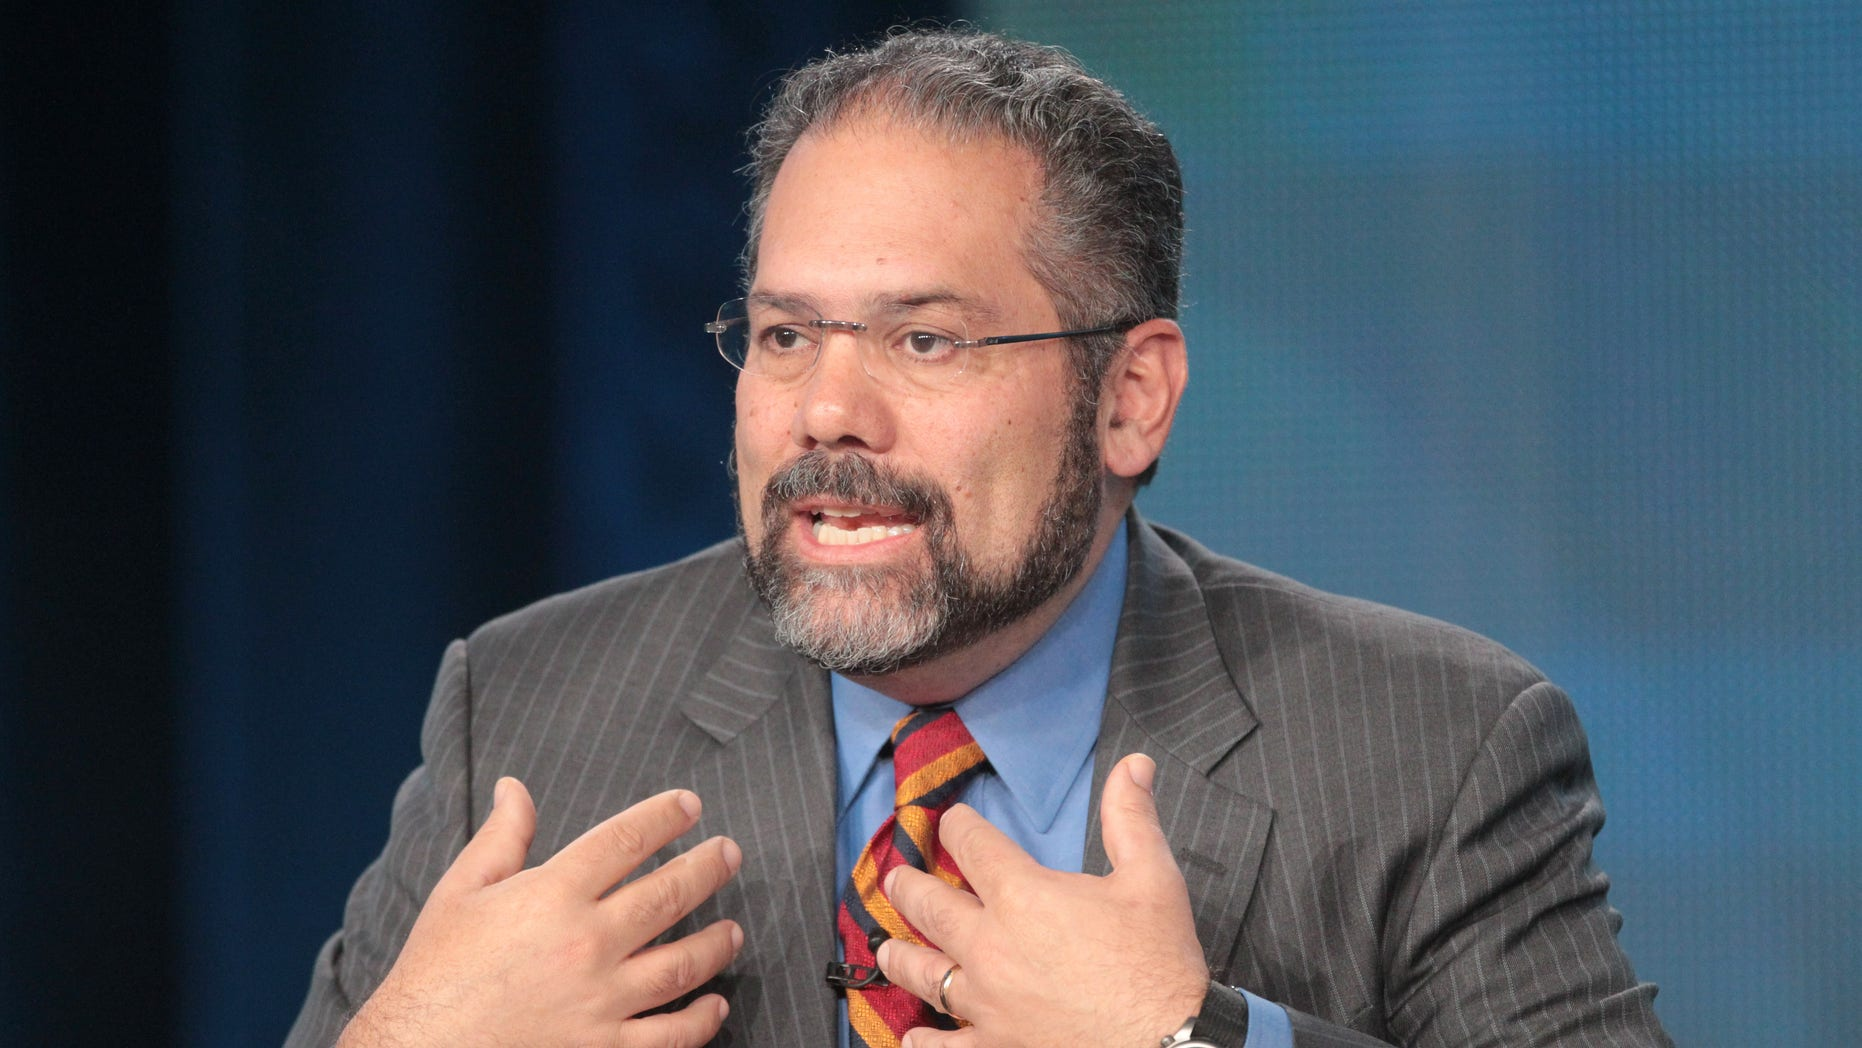 Ray Suarez during the PBS Election Coverage panel on January 4, 2012 in Pasadena, California.